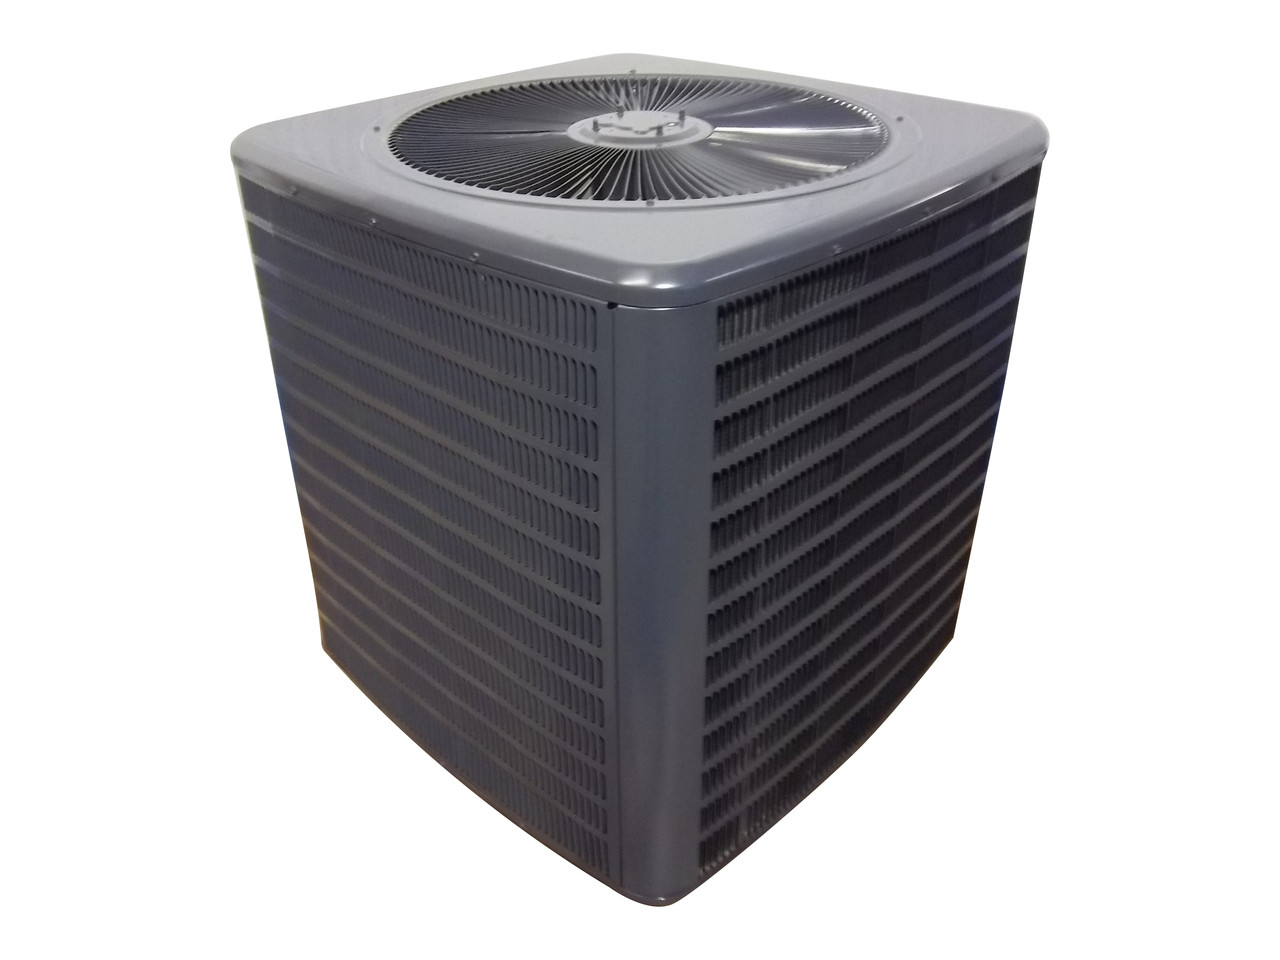 #605851 Used AC Depot Refurbished Certified Condenser GOODMAN  Brand New 11421 Central Air Conditioner Home Depot images with 1280x960 px on helpvideos.info - Air Conditioners, Air Coolers and more